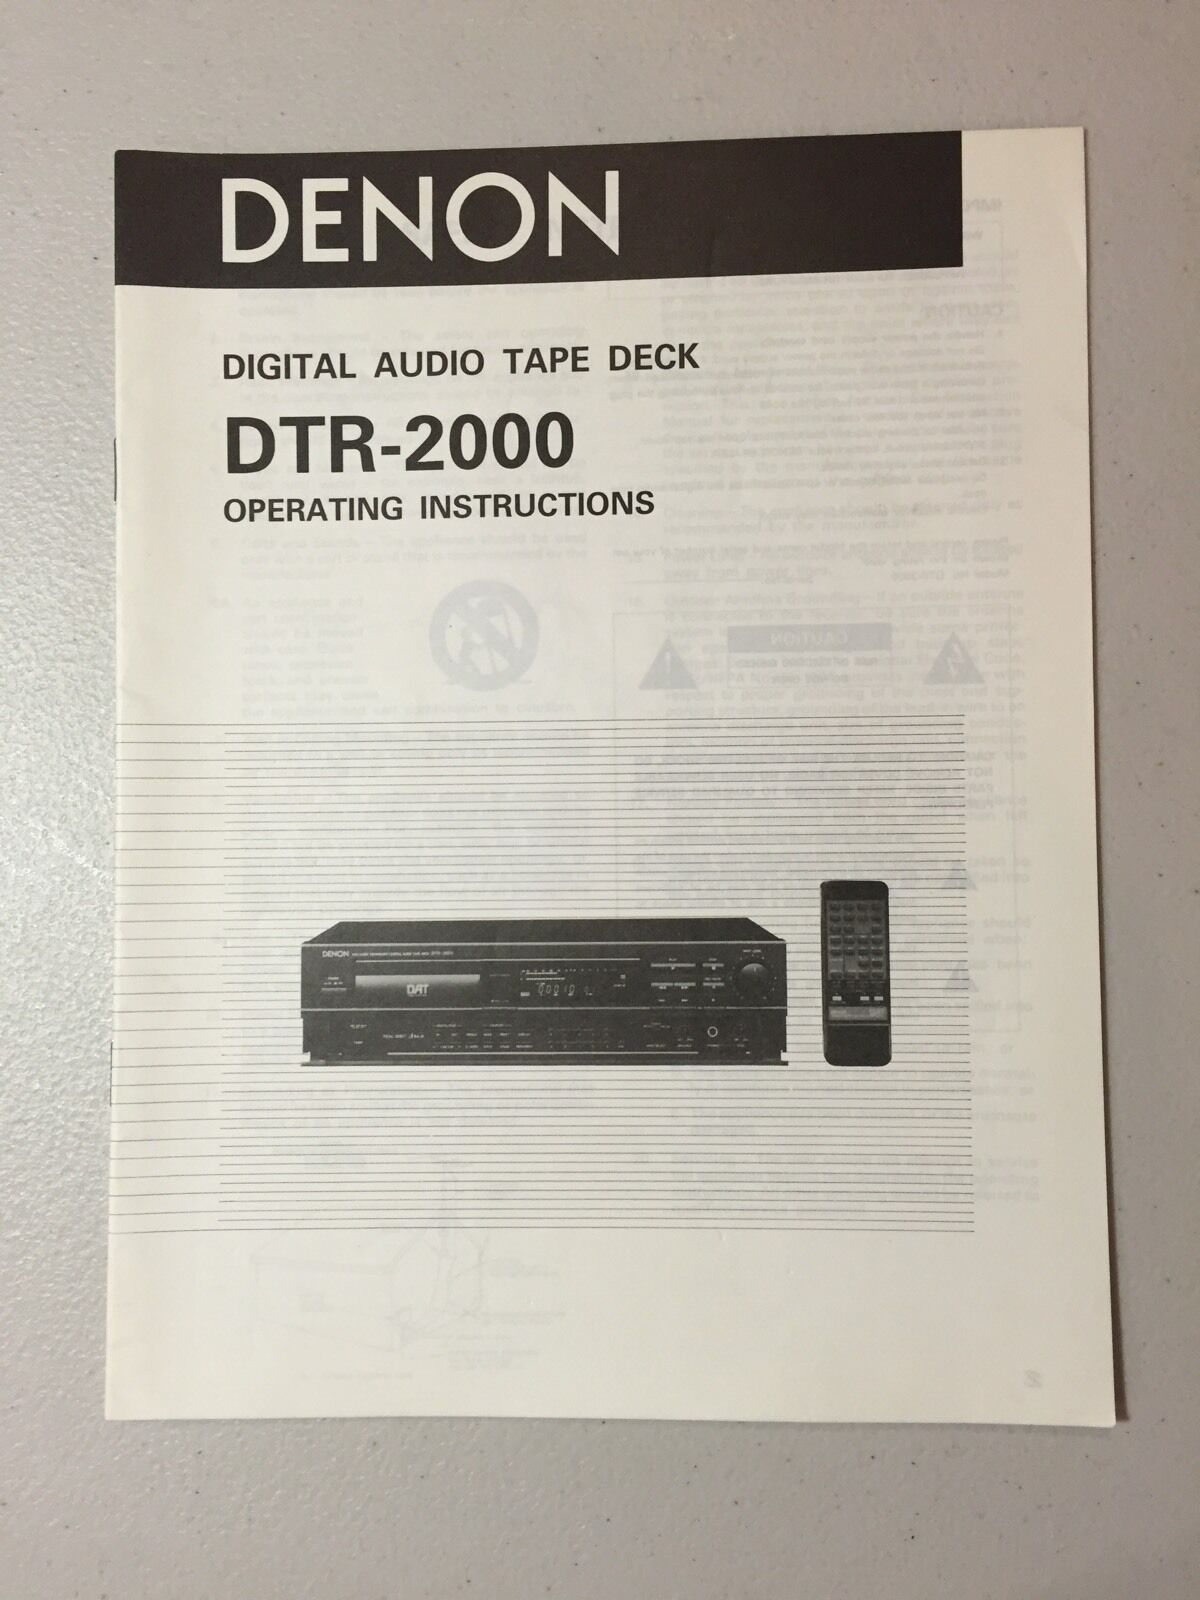 DENON DTR-2000 DAT Recorder Owner's Manual Original - NOS 1 of 1Only 5  available ...